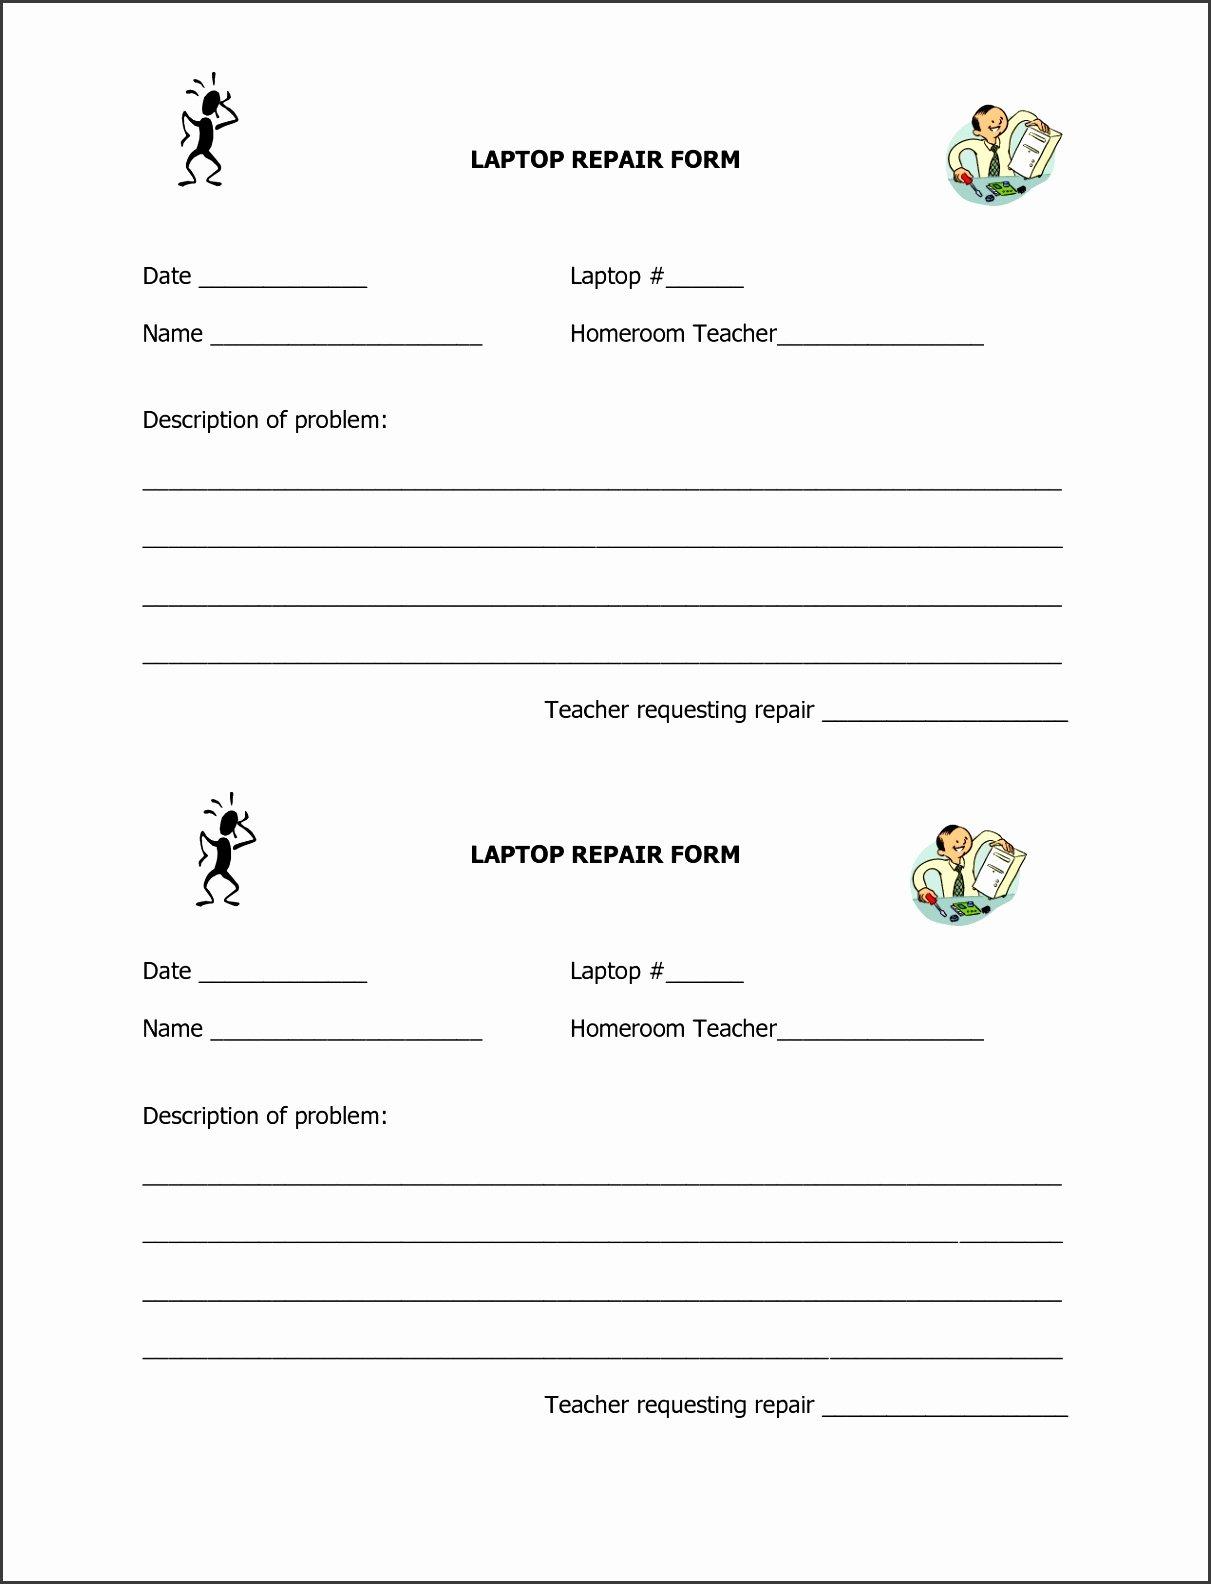 Computer Repair forms Templates Awesome 6 Puter Repair Request form Template Sampletemplatess